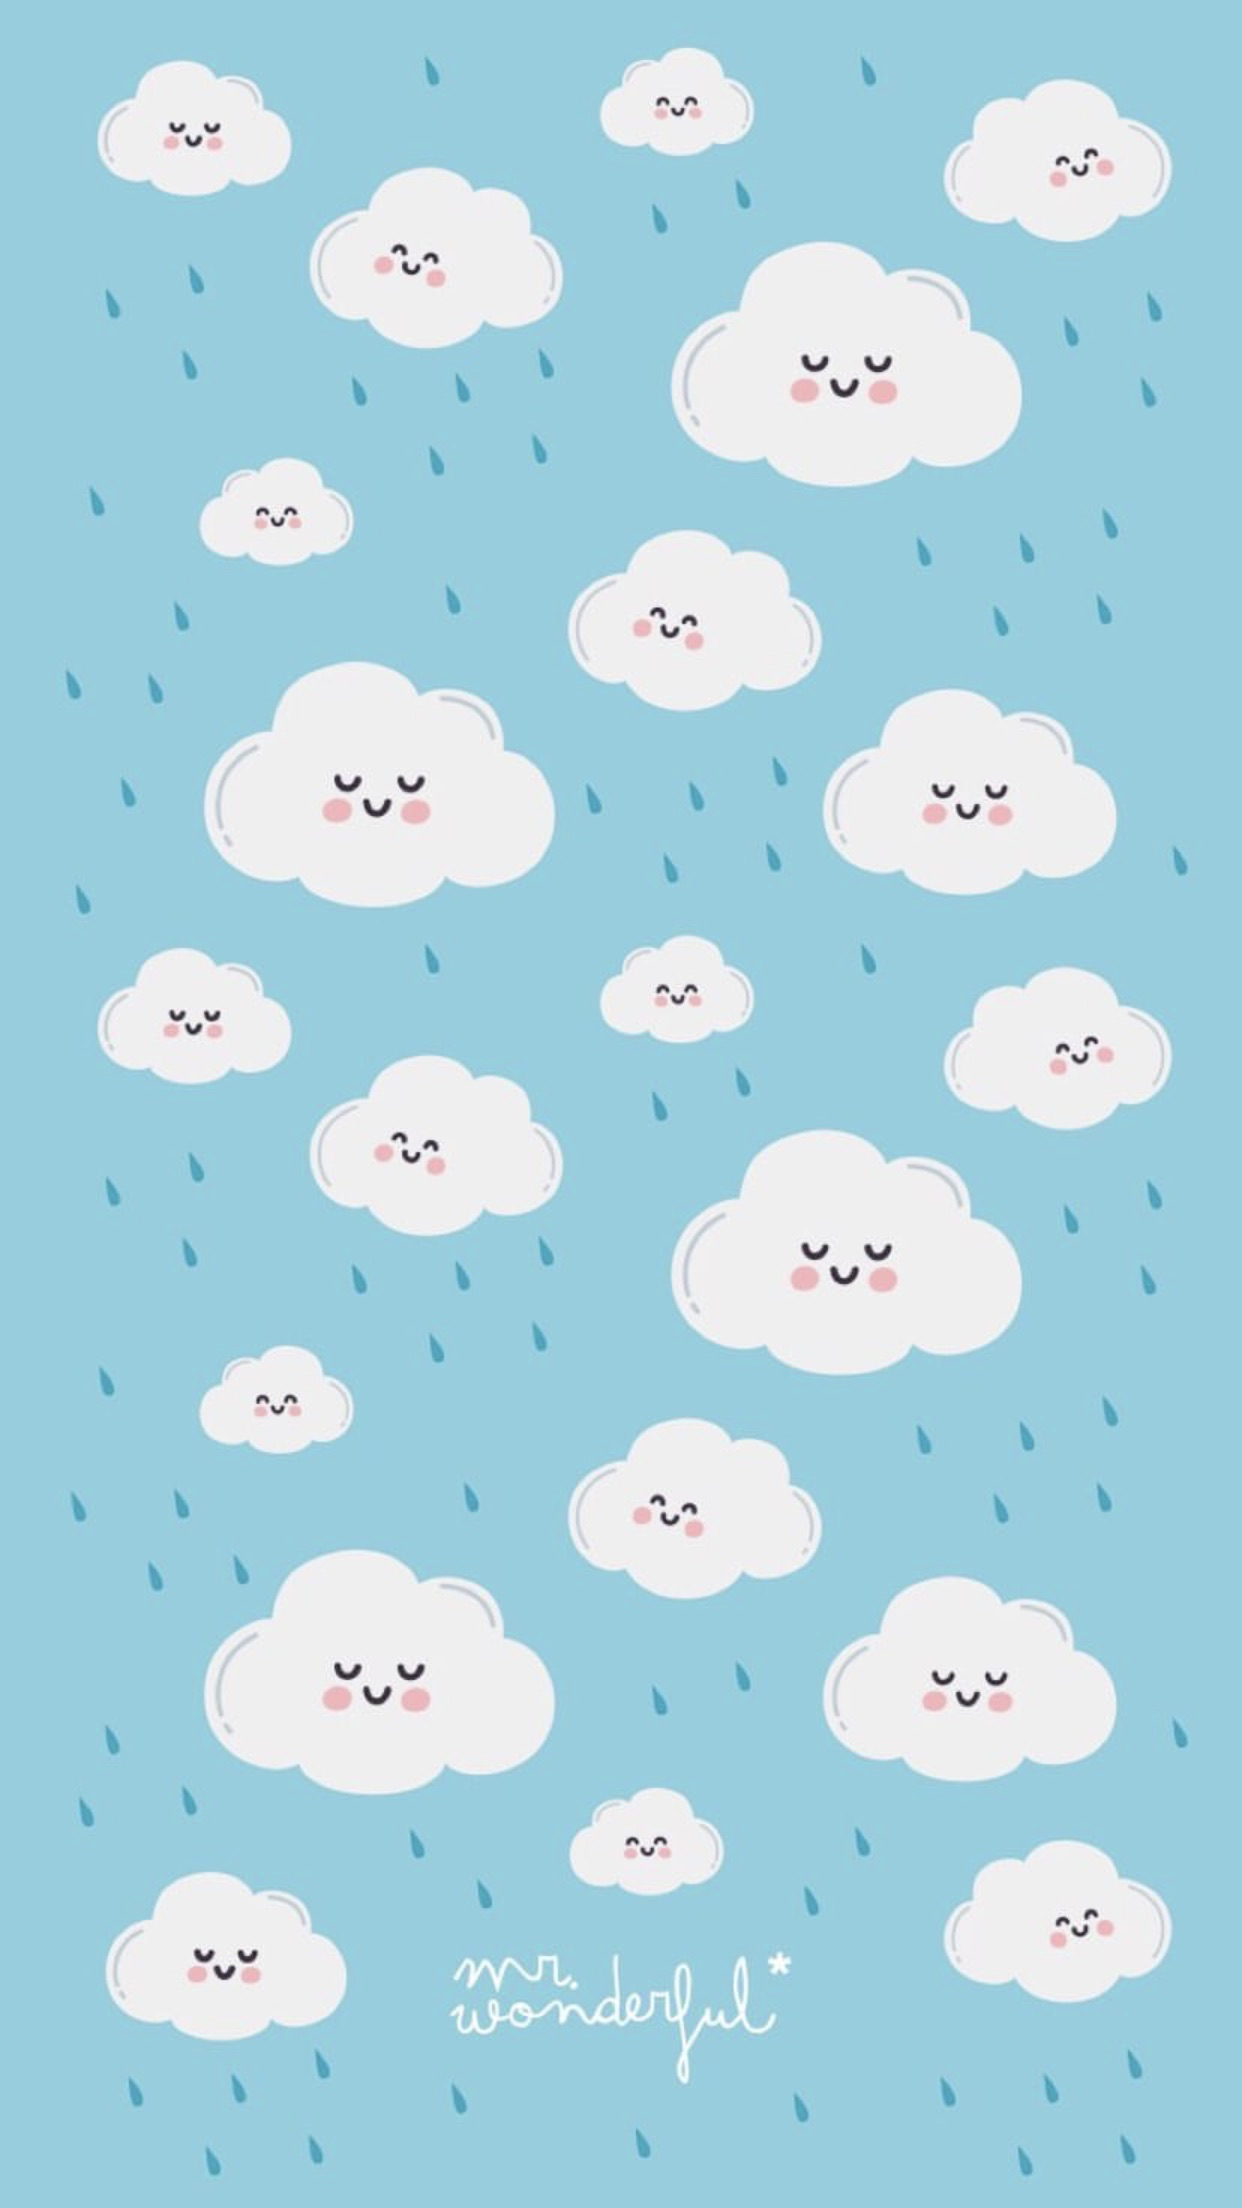 fondos de pantalla, fondo de pantalla, fondo de pantalla divertido, fondo de pantalla femenino, girly backgrounds, cool background, colorful backfround, fondo de pantalla patron, pattern, fondo de pantalla de nubes, cloud background.